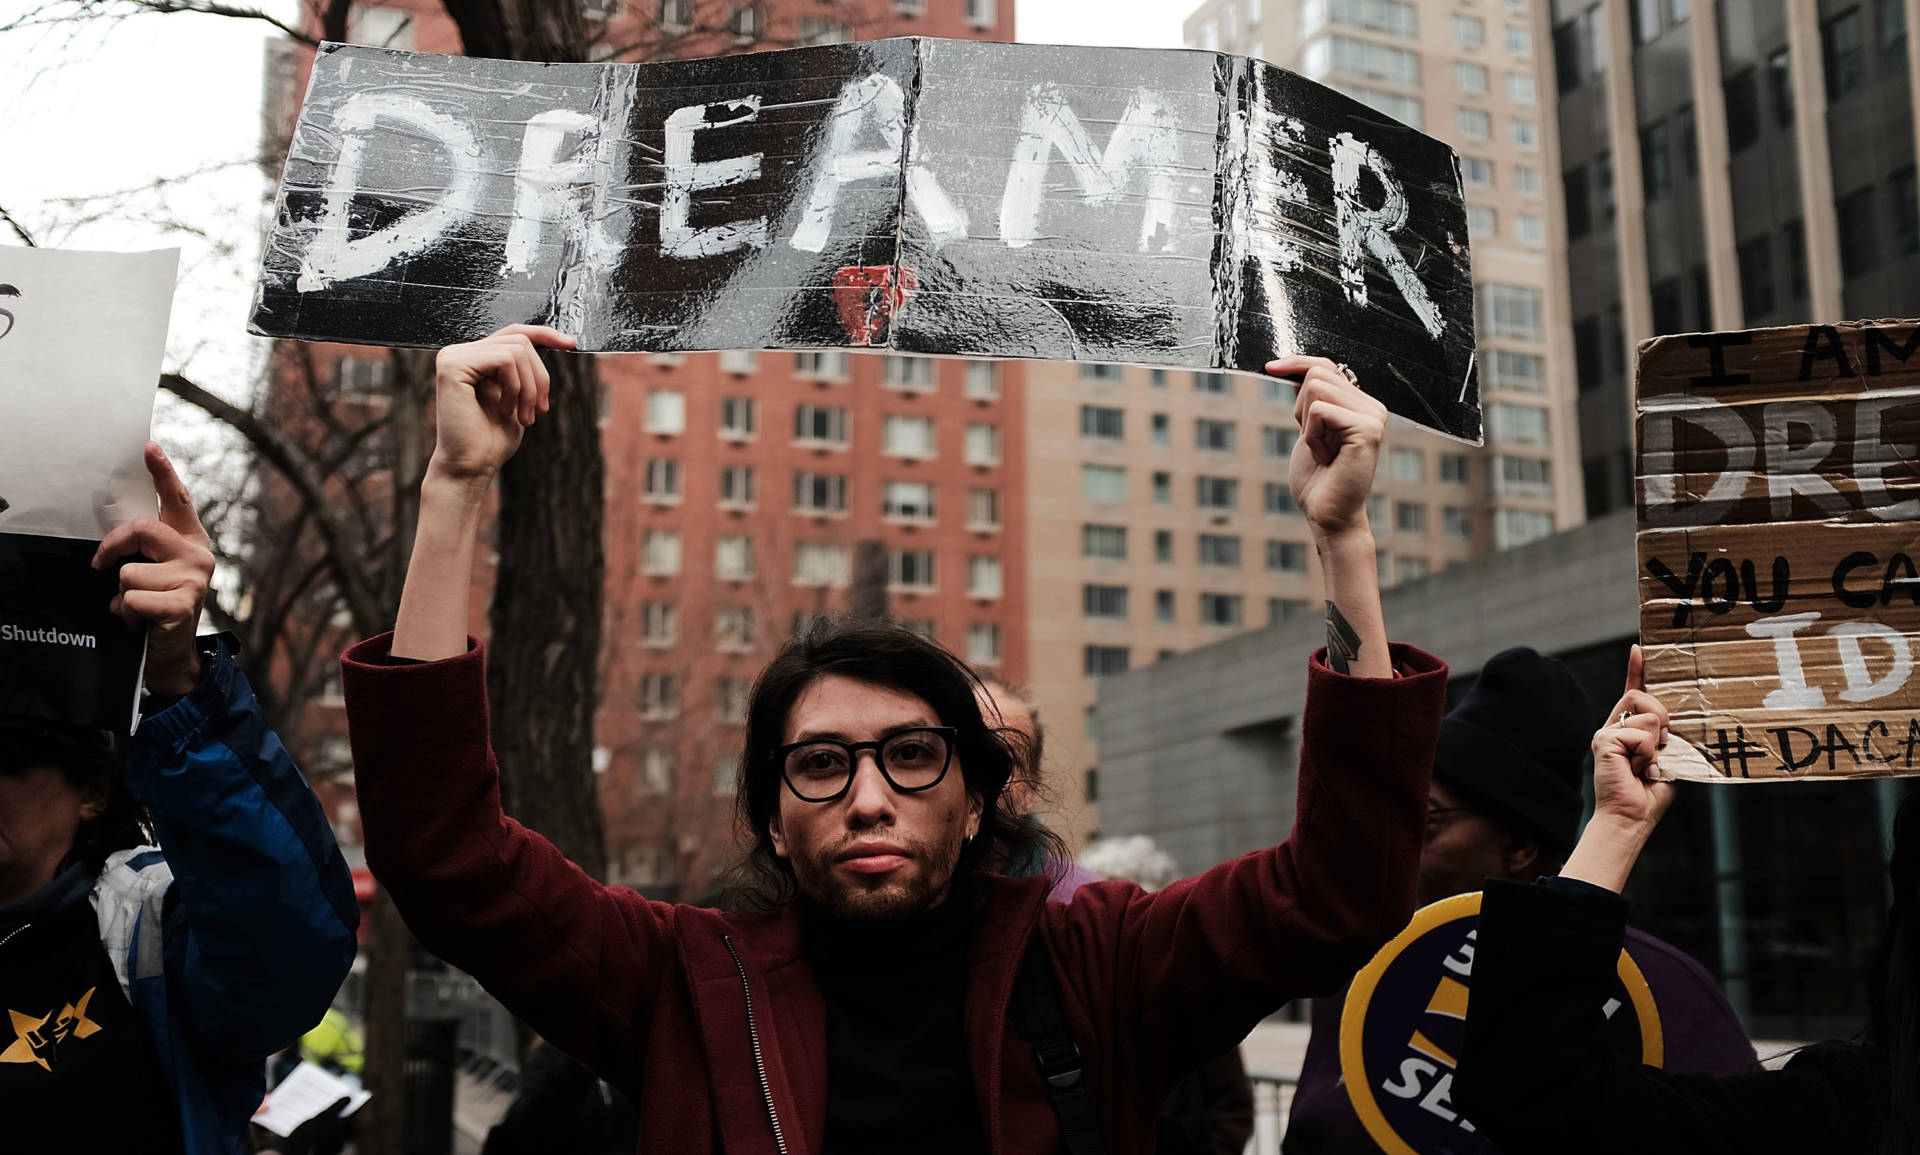 Demonstrators protest the lack of a deal on the Deferred Action for Childhood Arrivals program, which includes so-called DREAMers, last month outside of Federal Plaza in New York City. There is still no deal. Spencer Platt/Getty Images